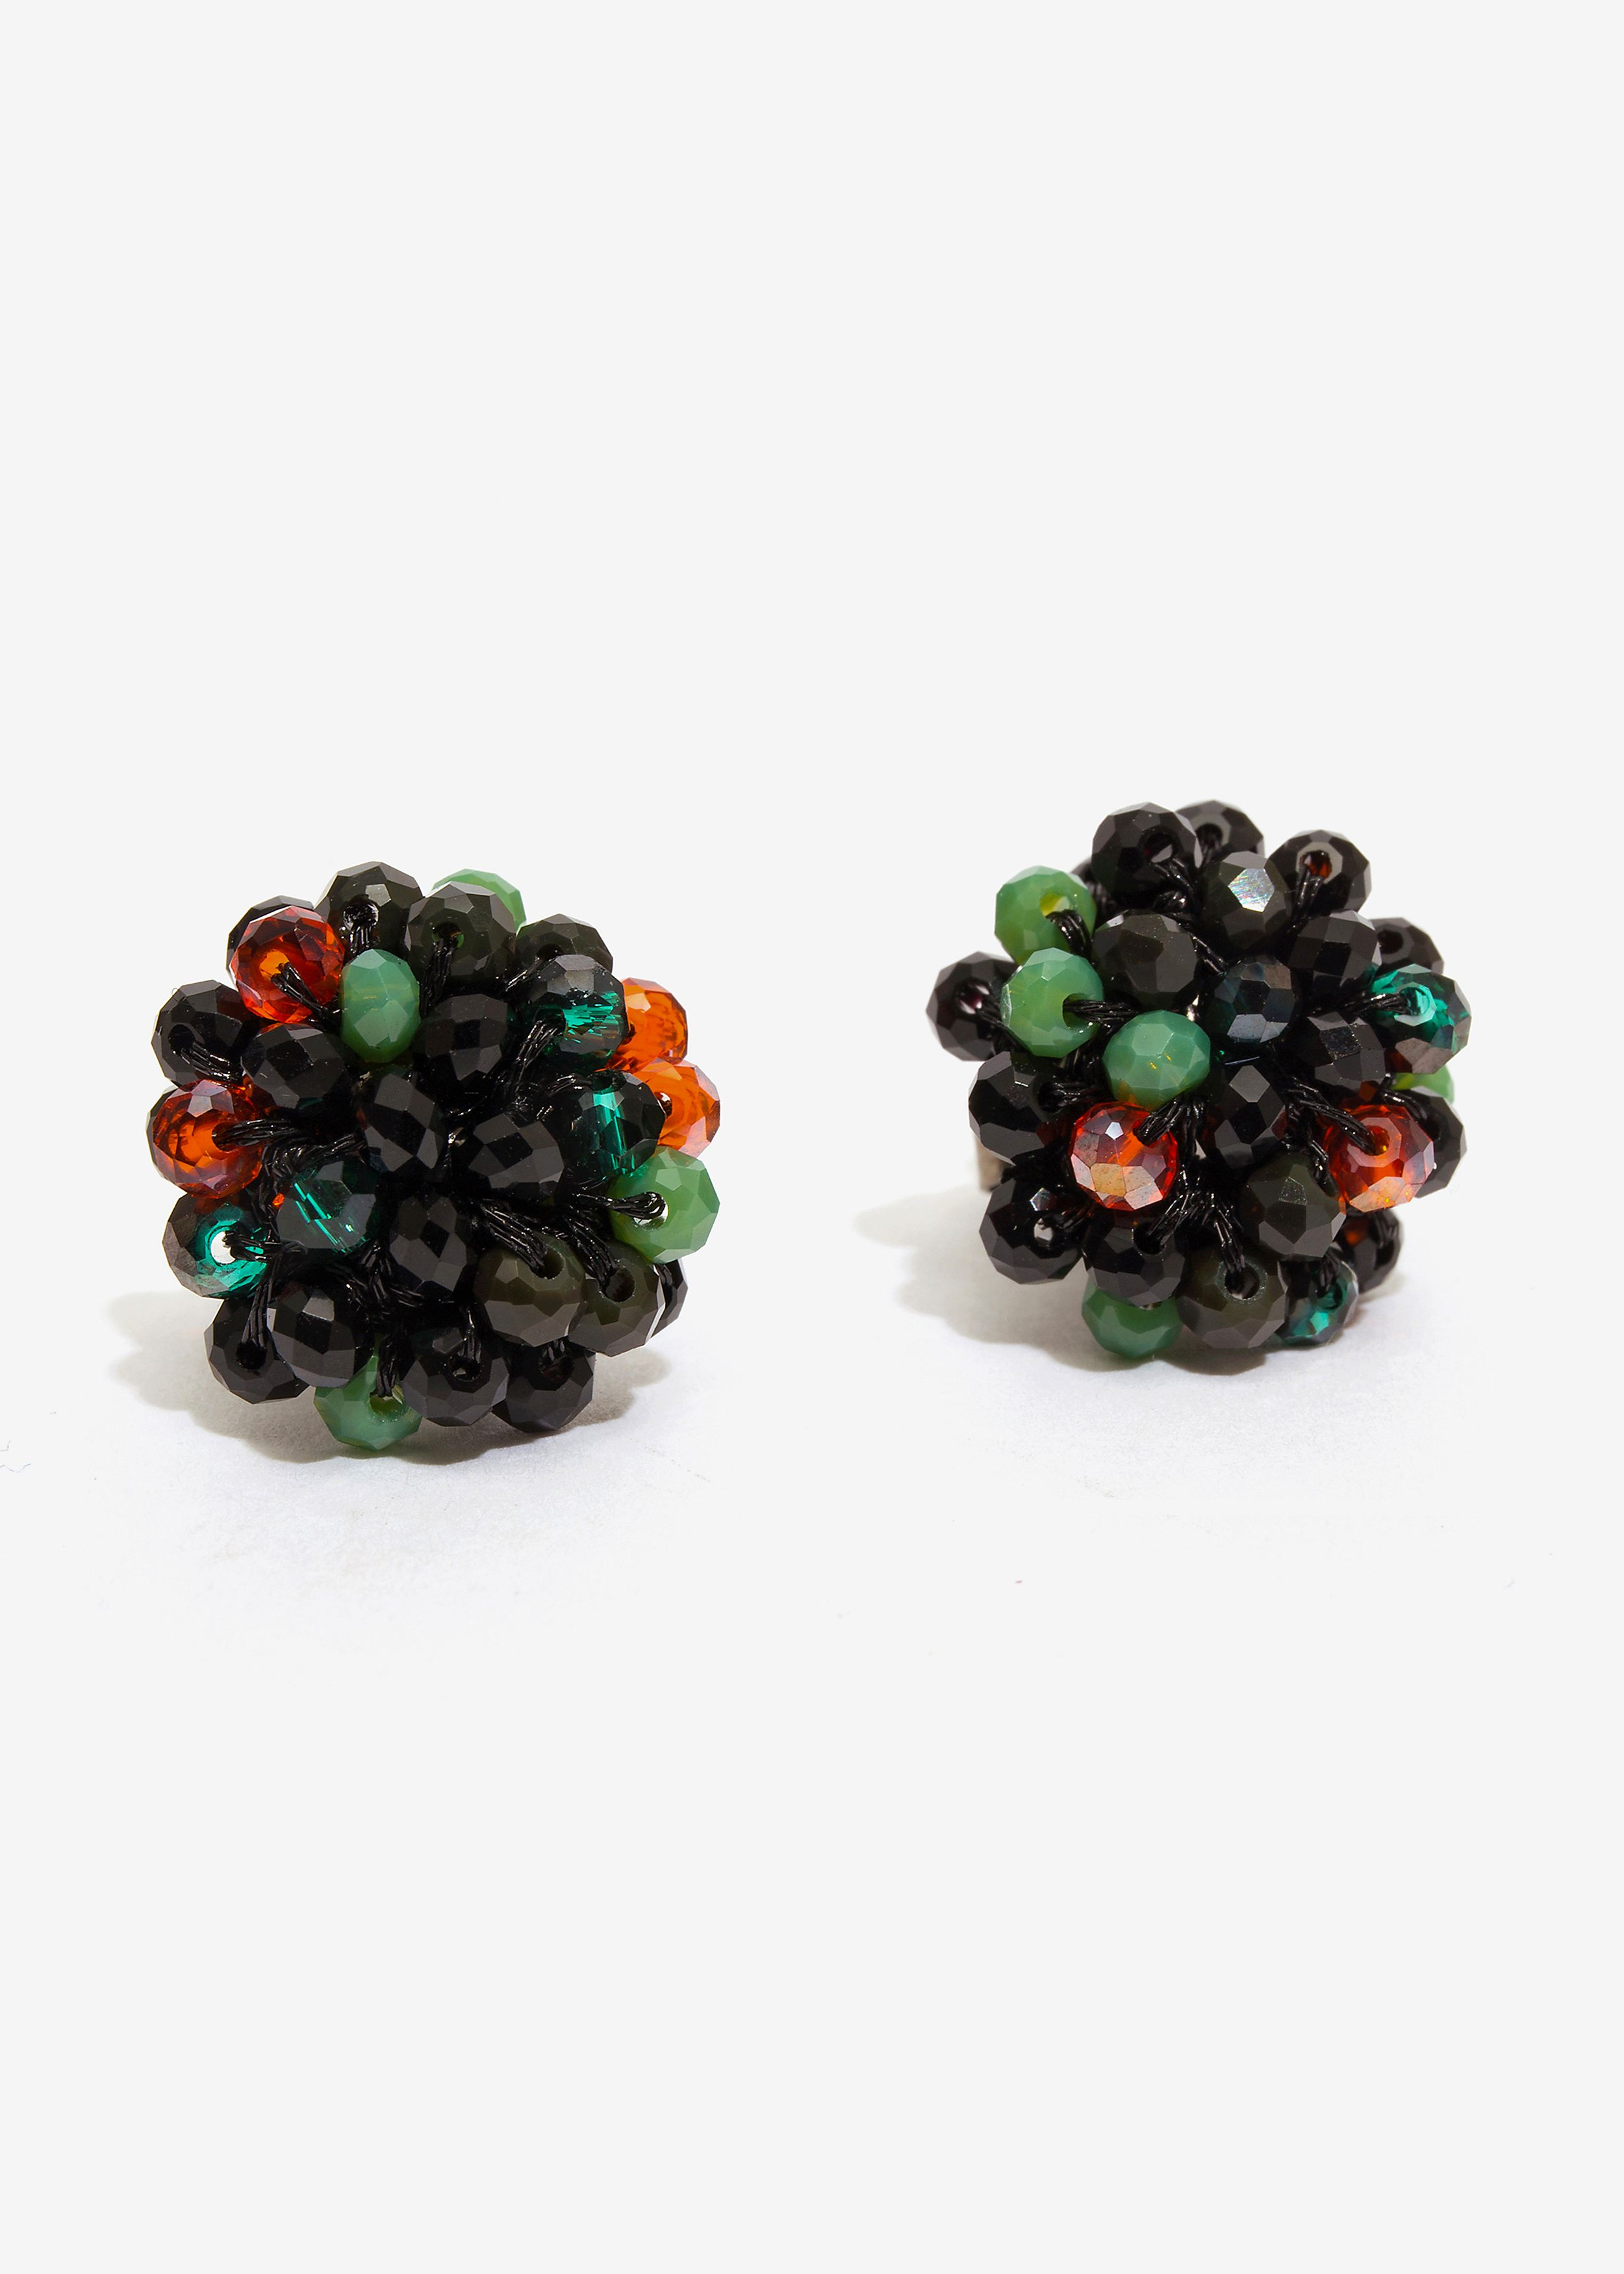 ORECCHINO LOBO BEADS MIX VERDE